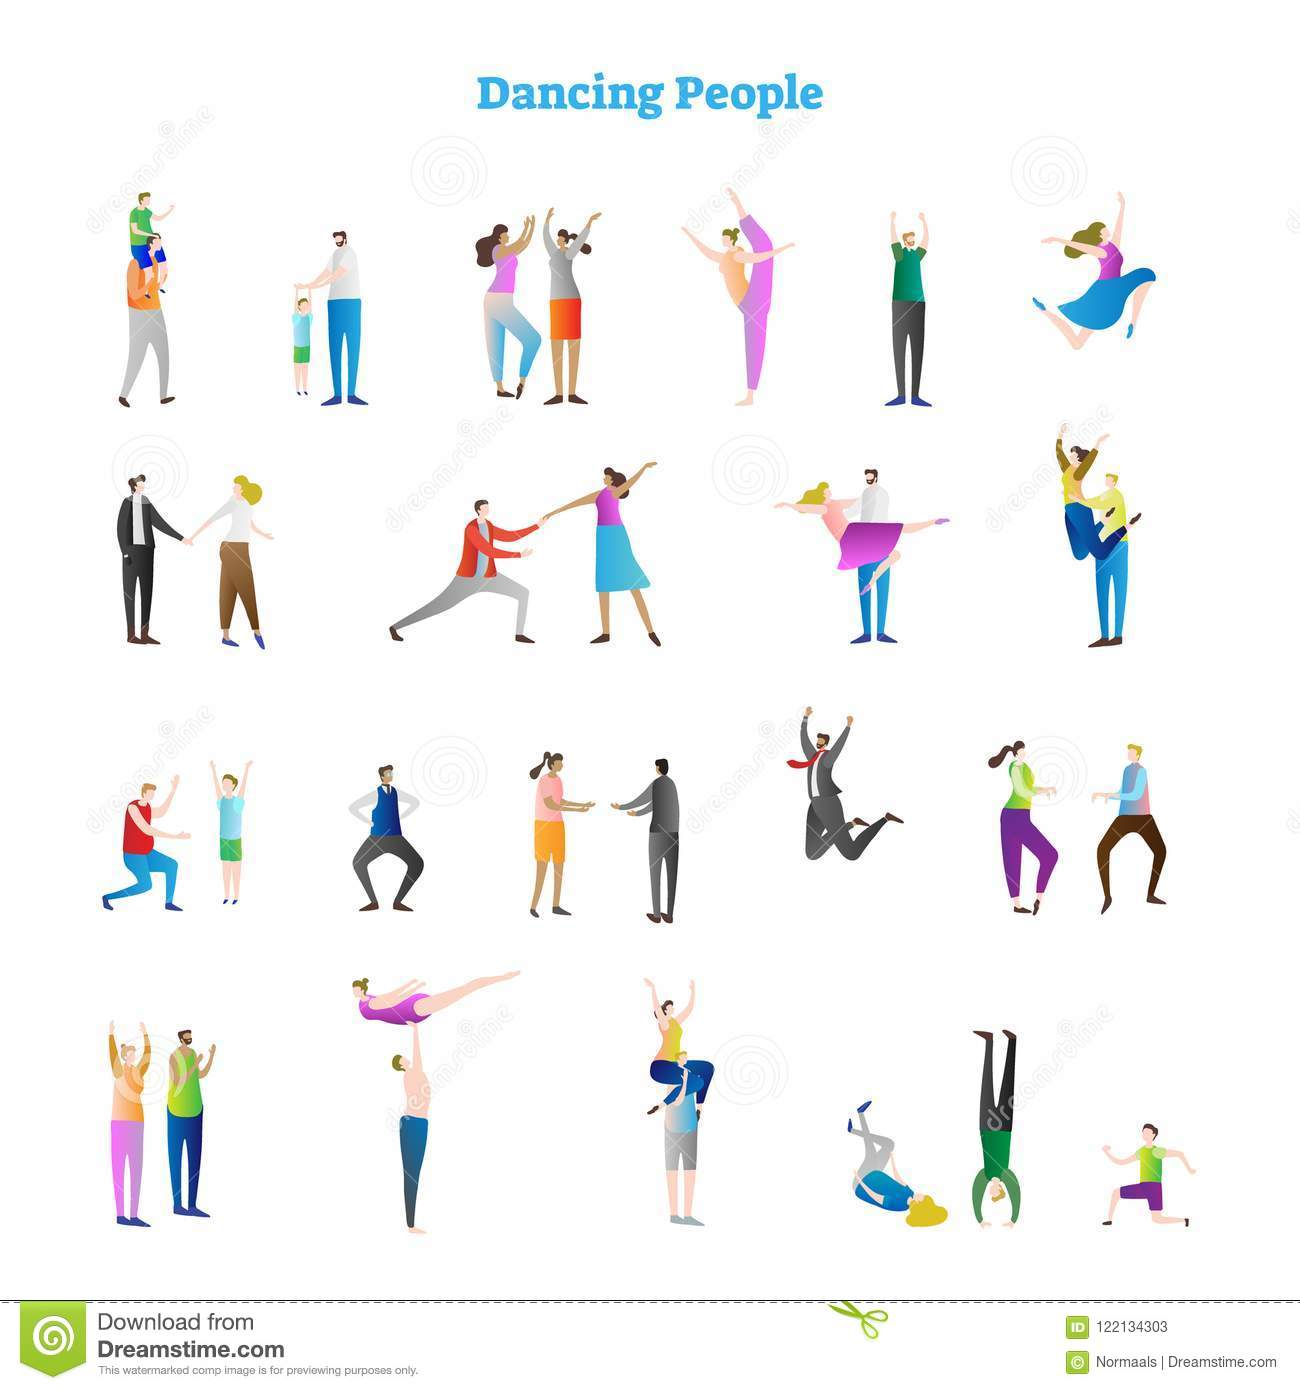 Dancing People Vector Illustrations Collection Various Groovy Dance Moves Fun Party Crowd Festive Event Kids And Adults Stock Vector Illustration Of Funky Motion 122134303